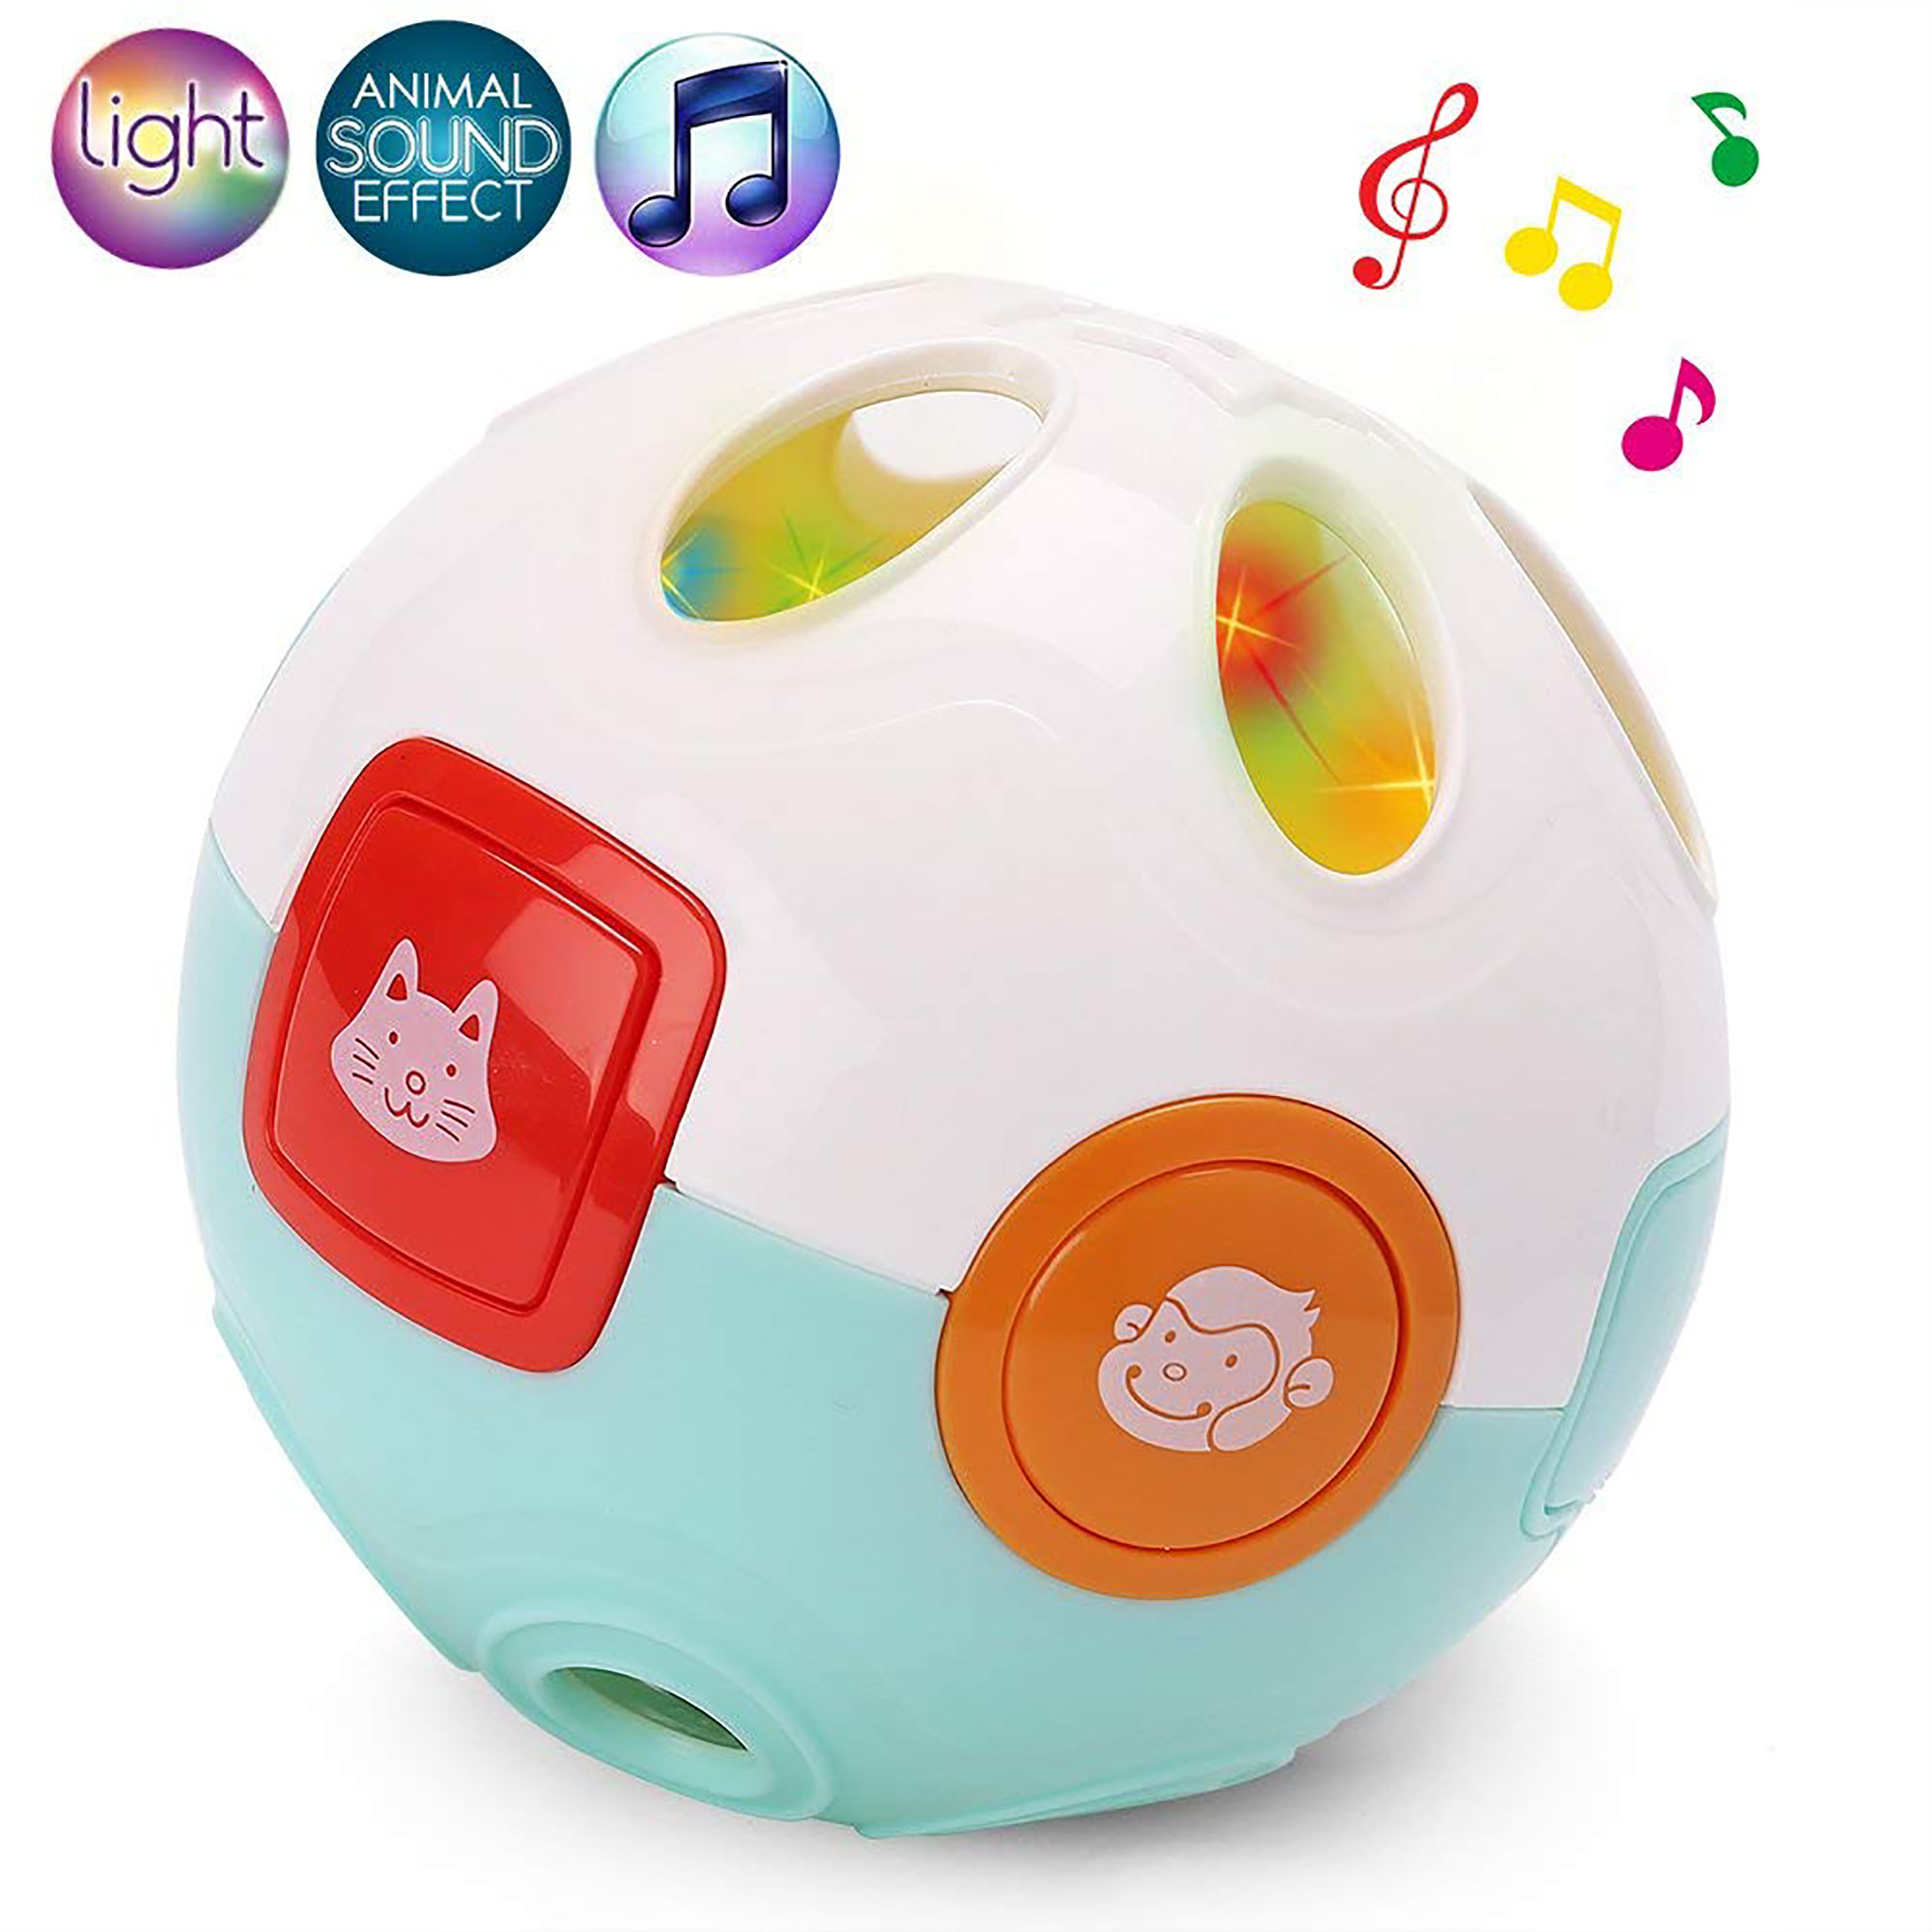 Baby Rolling Crawling Moving Learning Ball with Animals Sounds, Music and Light - Crawl Rattle Ball Toy for Infant Toddler Kids, Battery Included